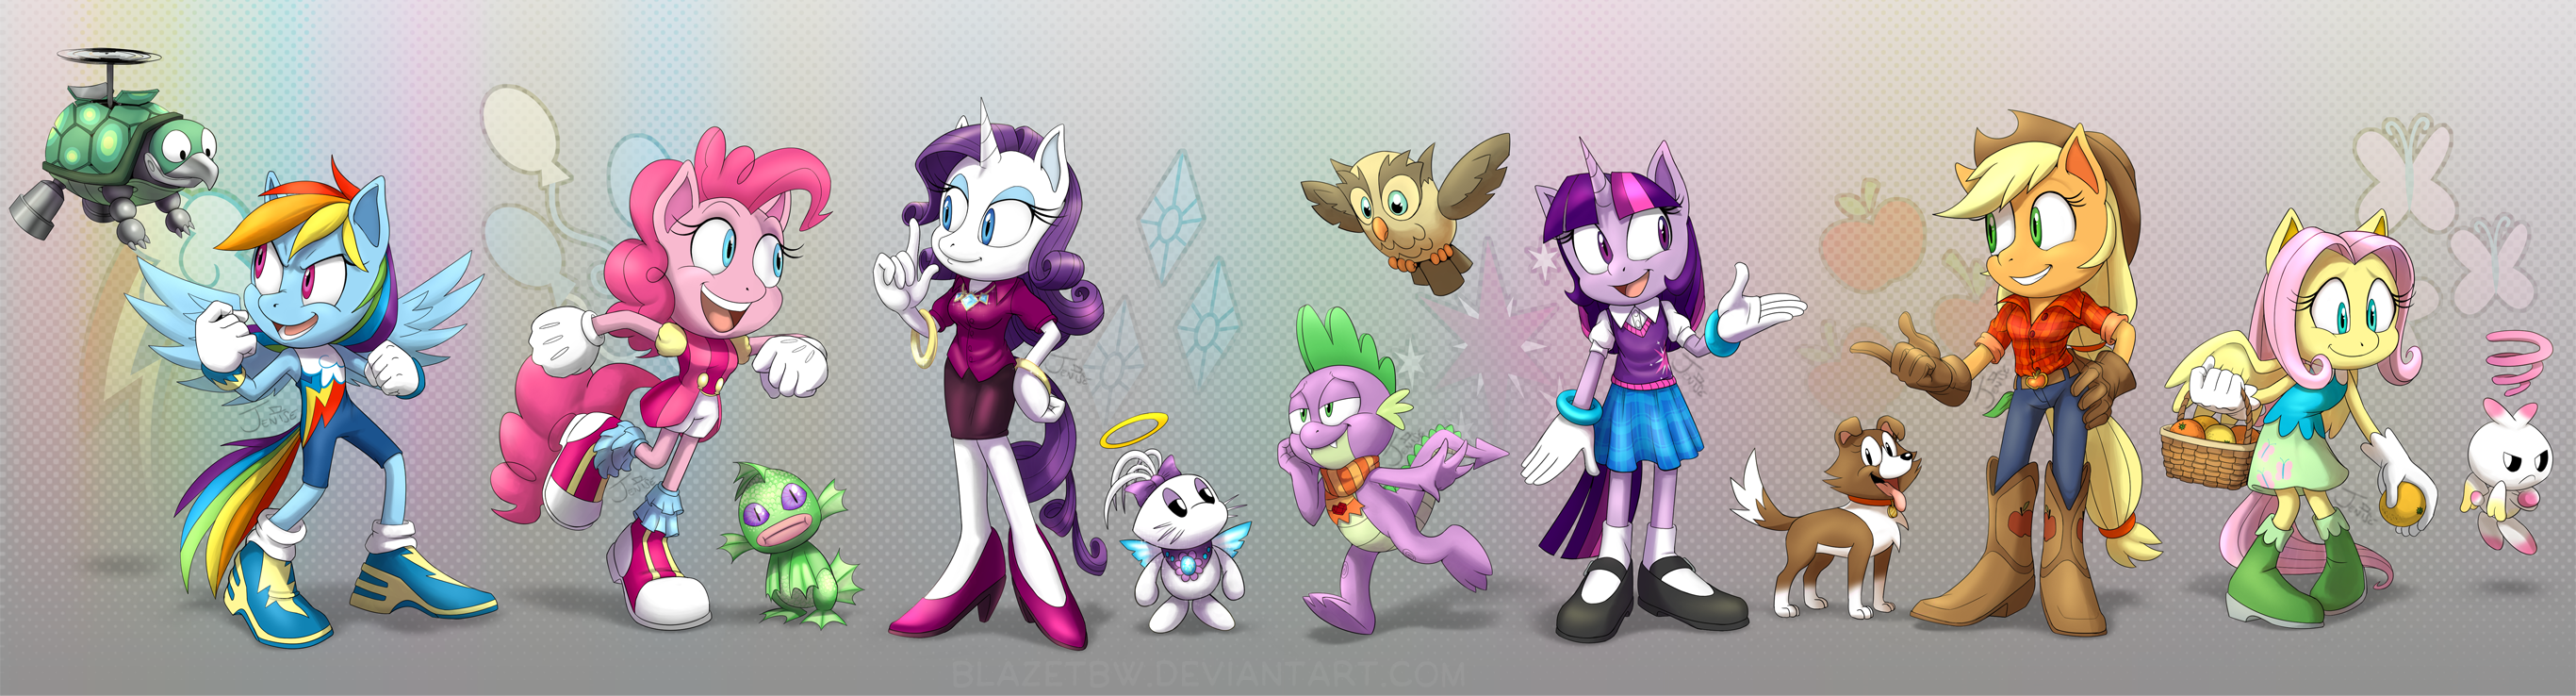 Sonic Style Ponies - Main Six and Pets by BlazeTBW on ...